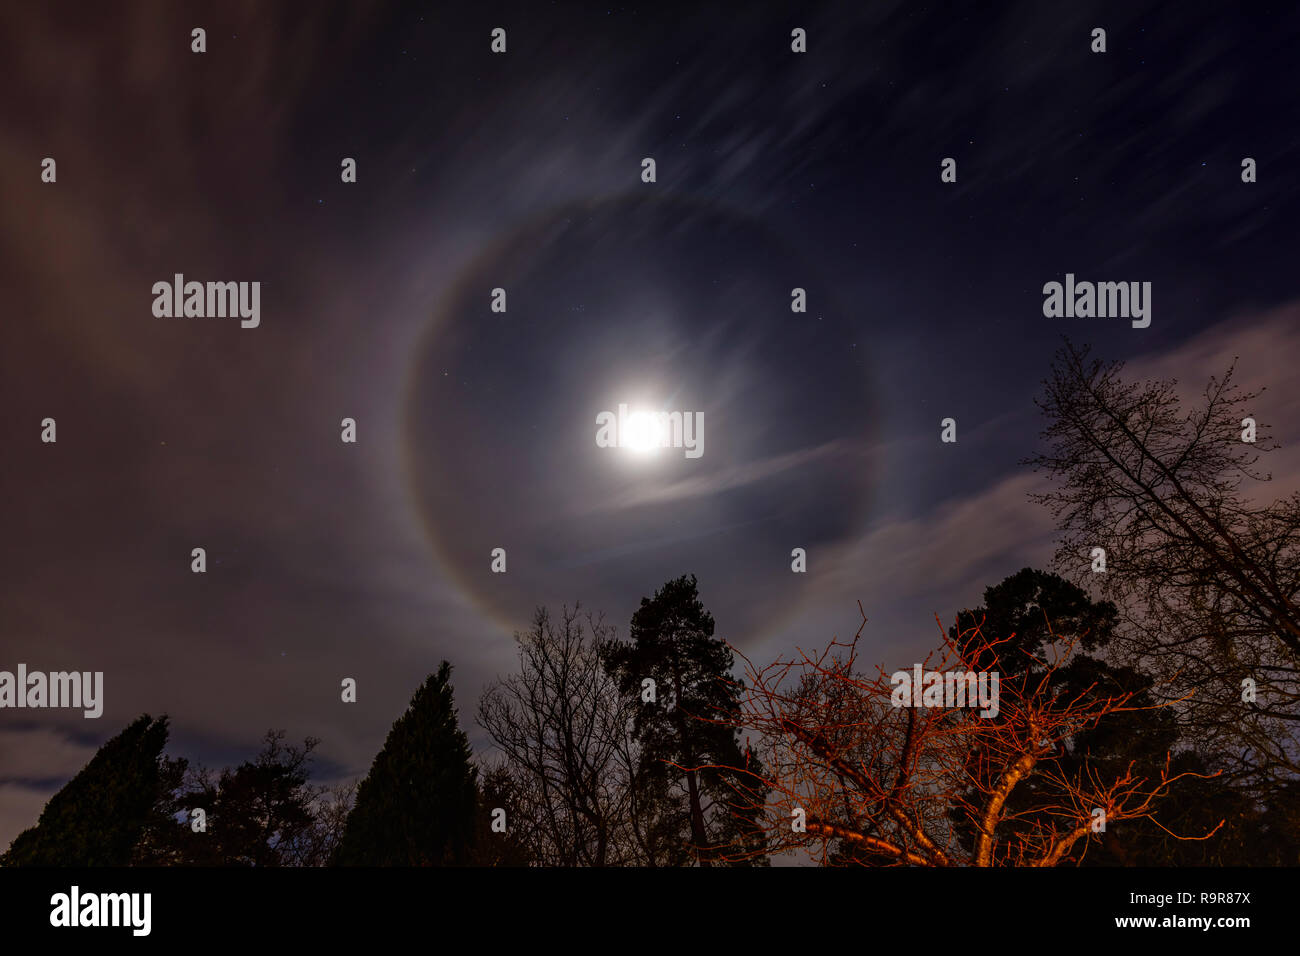 Circular lunar corona around the Moon in waxing gibbous phase,the night sky viewed from south-east England, UK in winter - Stock Image